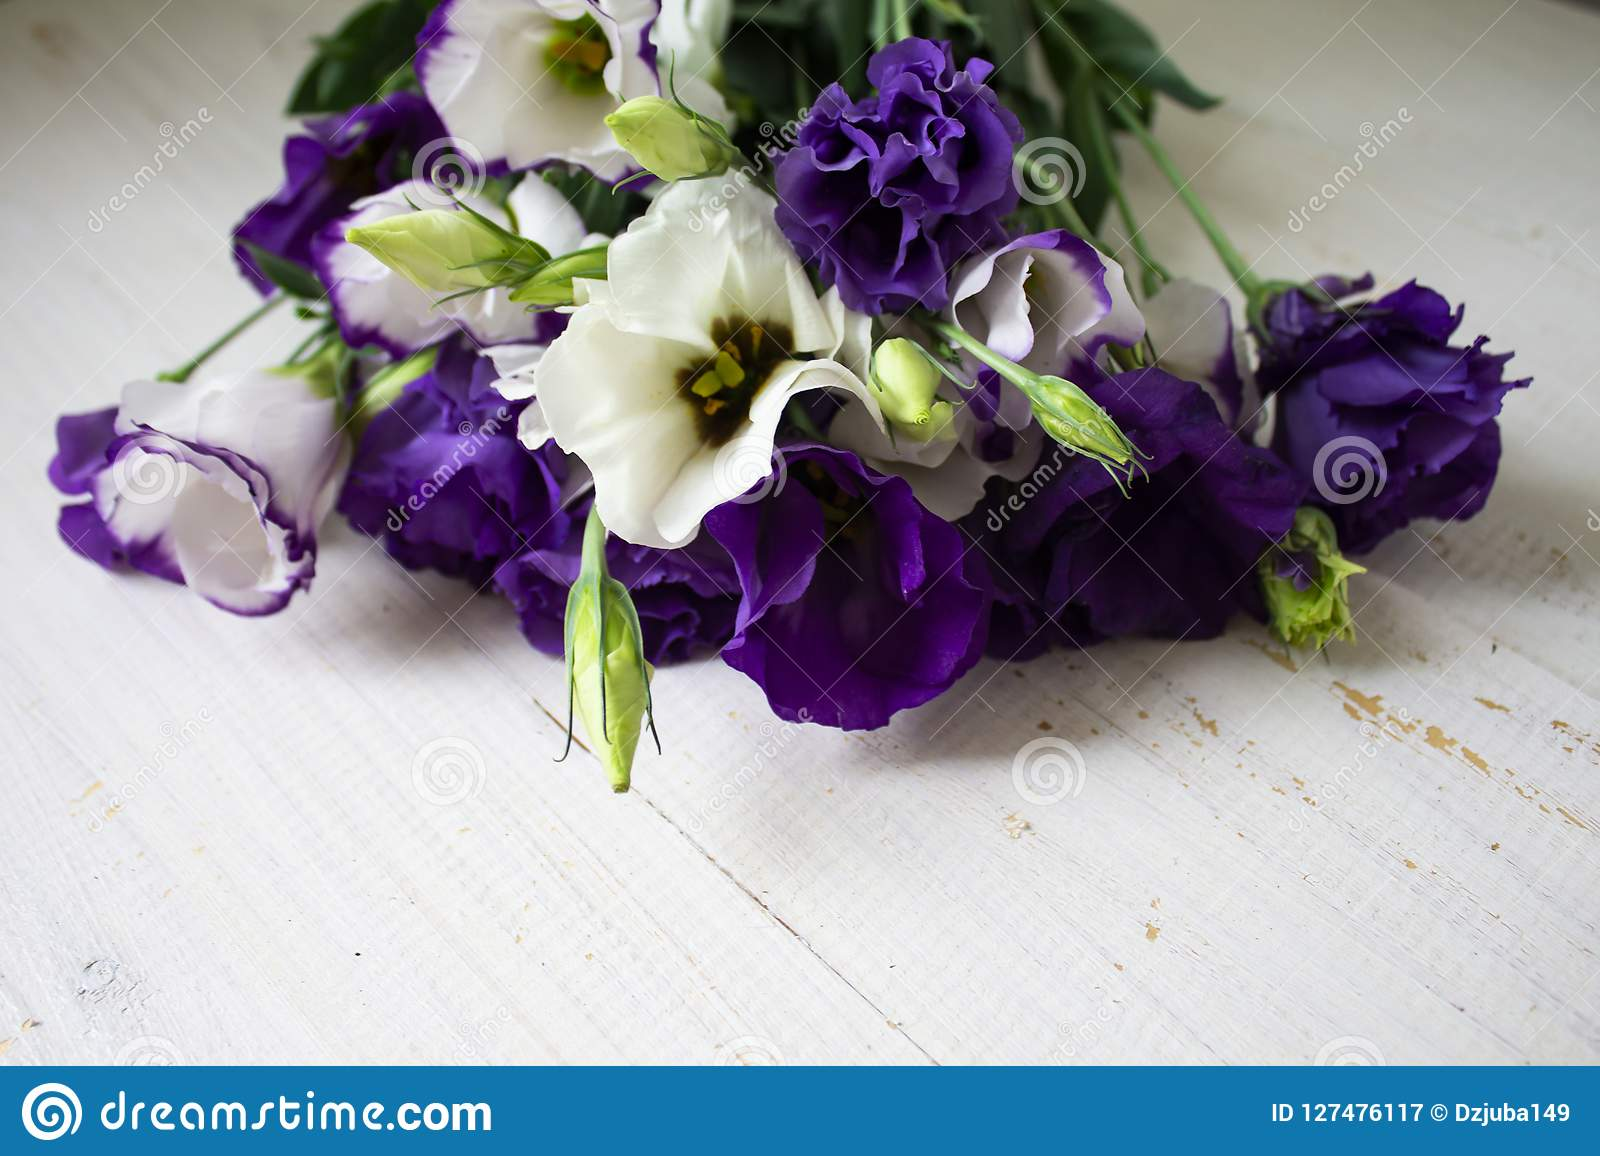 Some Flowers In The Garden Stock Image Image Of Background 127476117